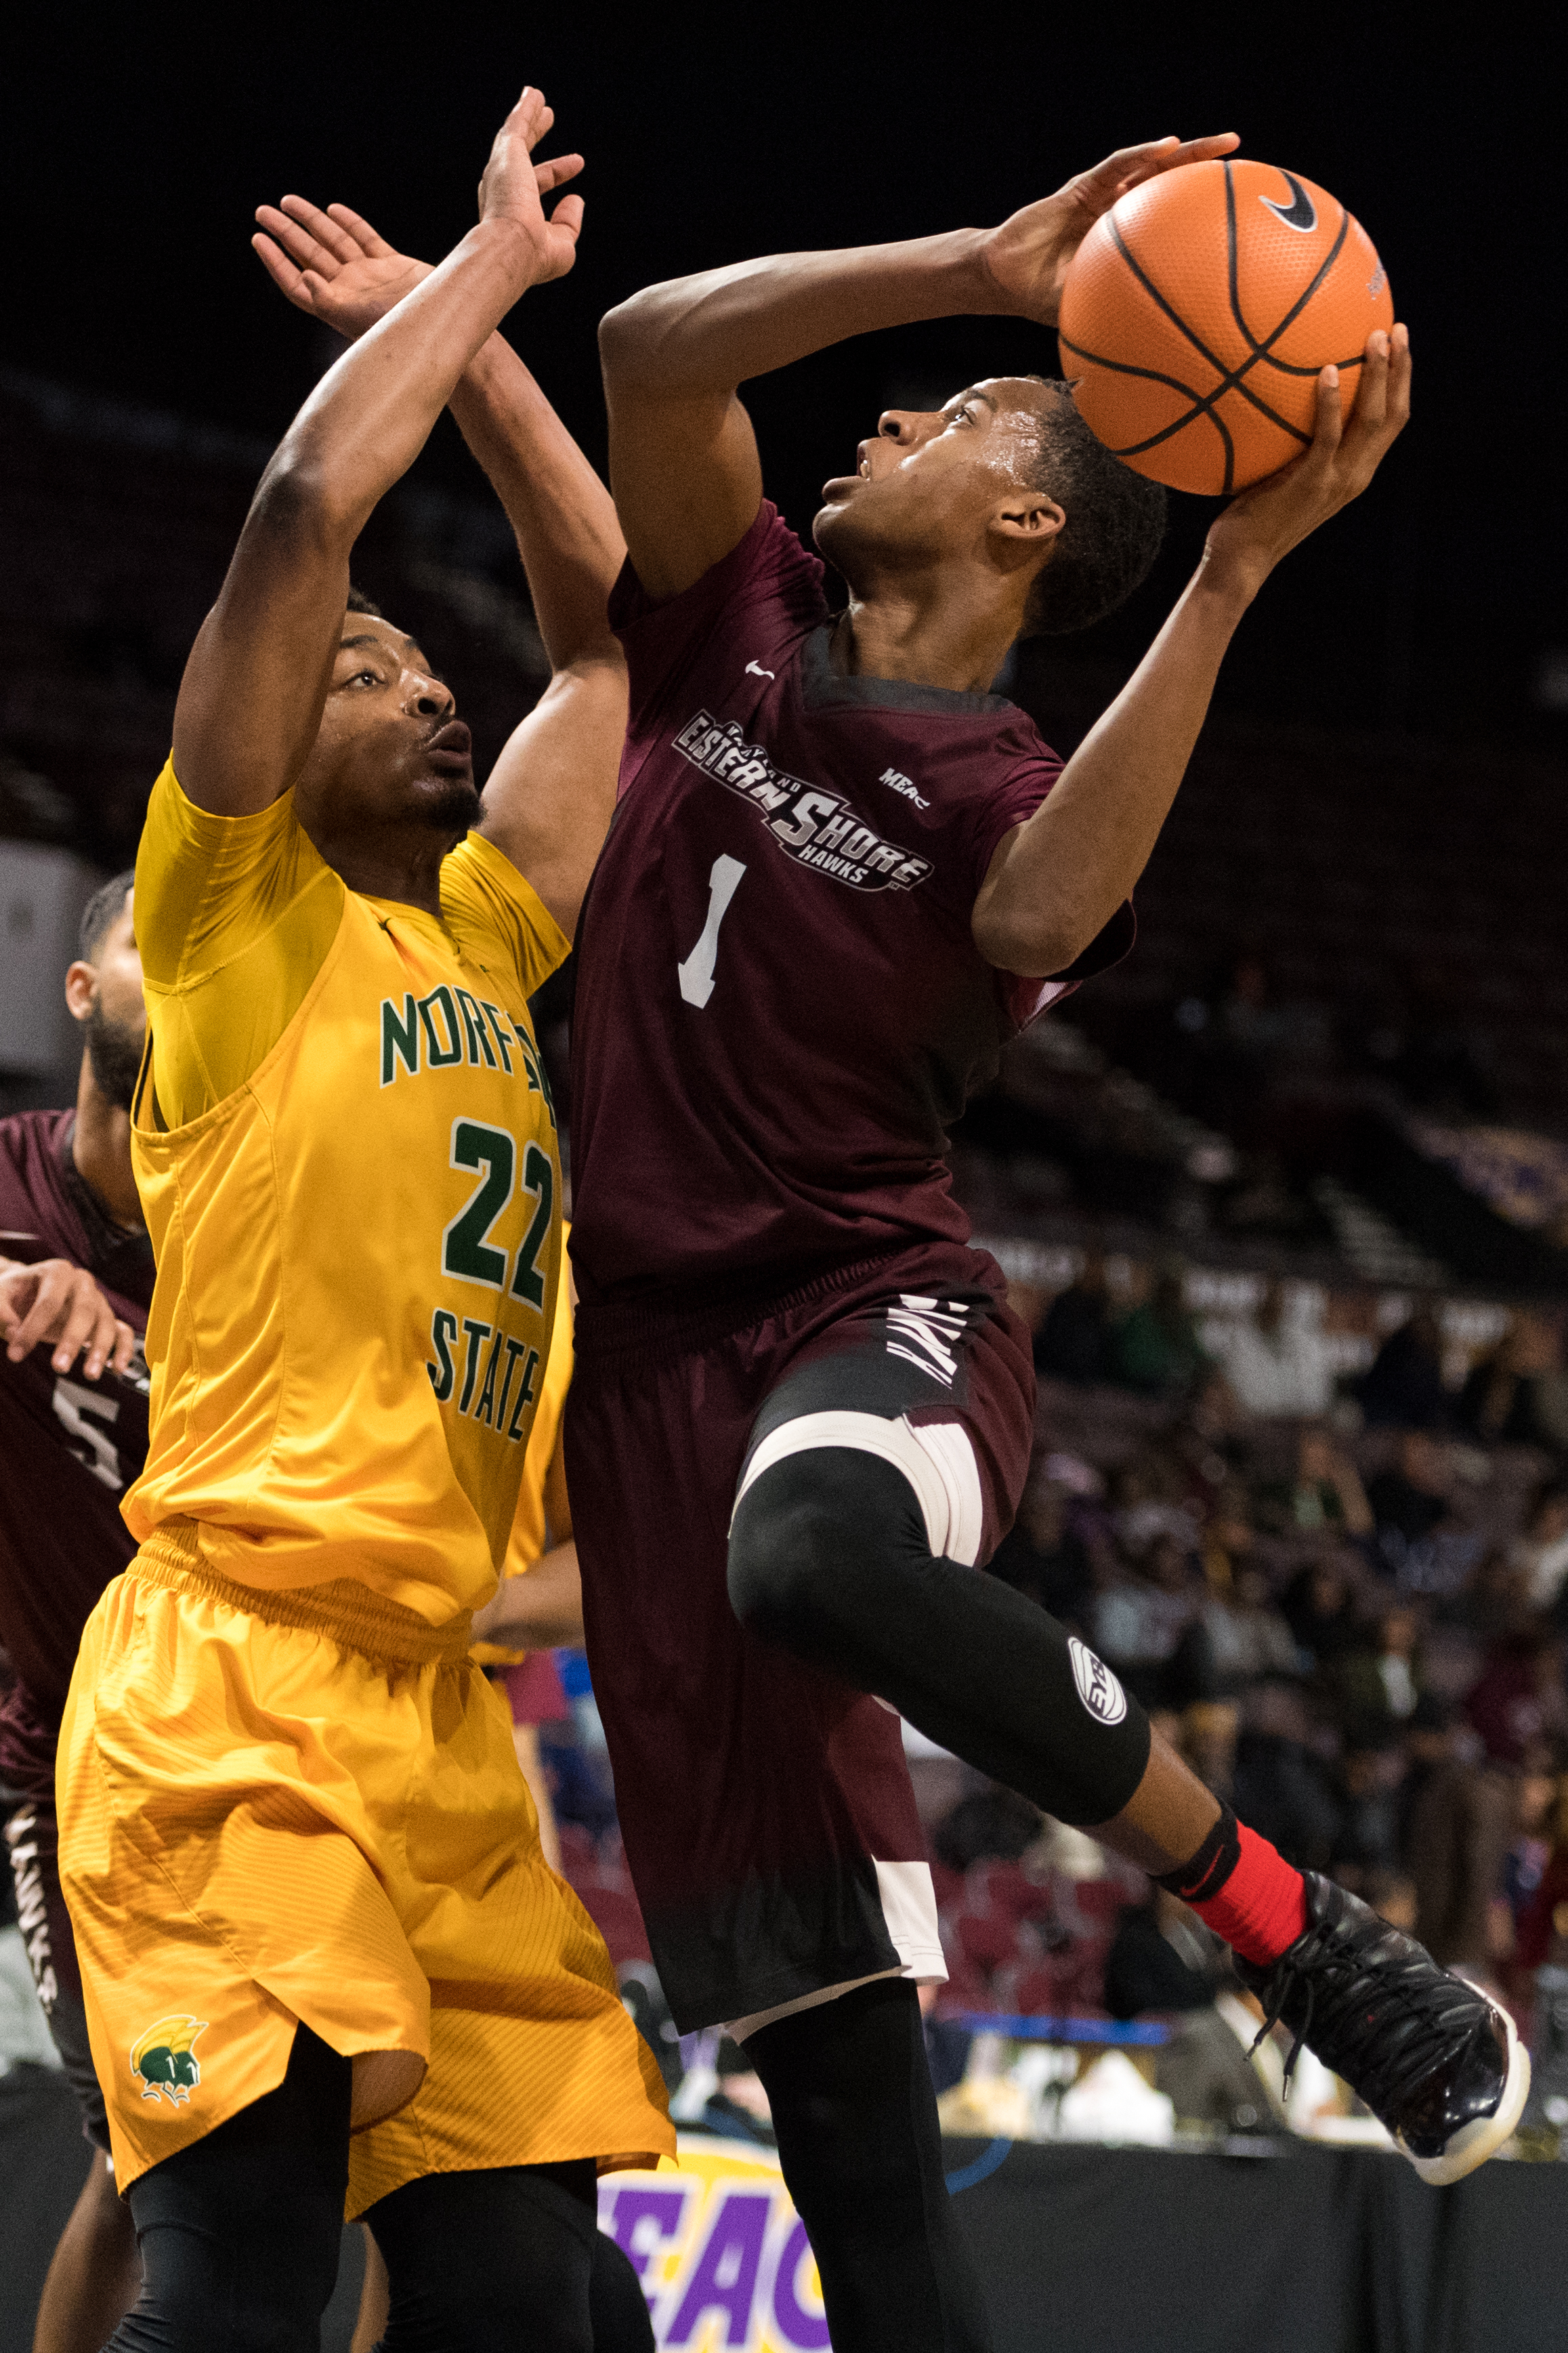 Maryland-Eastern Shore Hawks forward Miryne Thomas (1) takes a shot against Norfolk State Spartans forward Alex Long (22) during the Monday, March 5, 2018 game held at Norfolk Scope Arena.